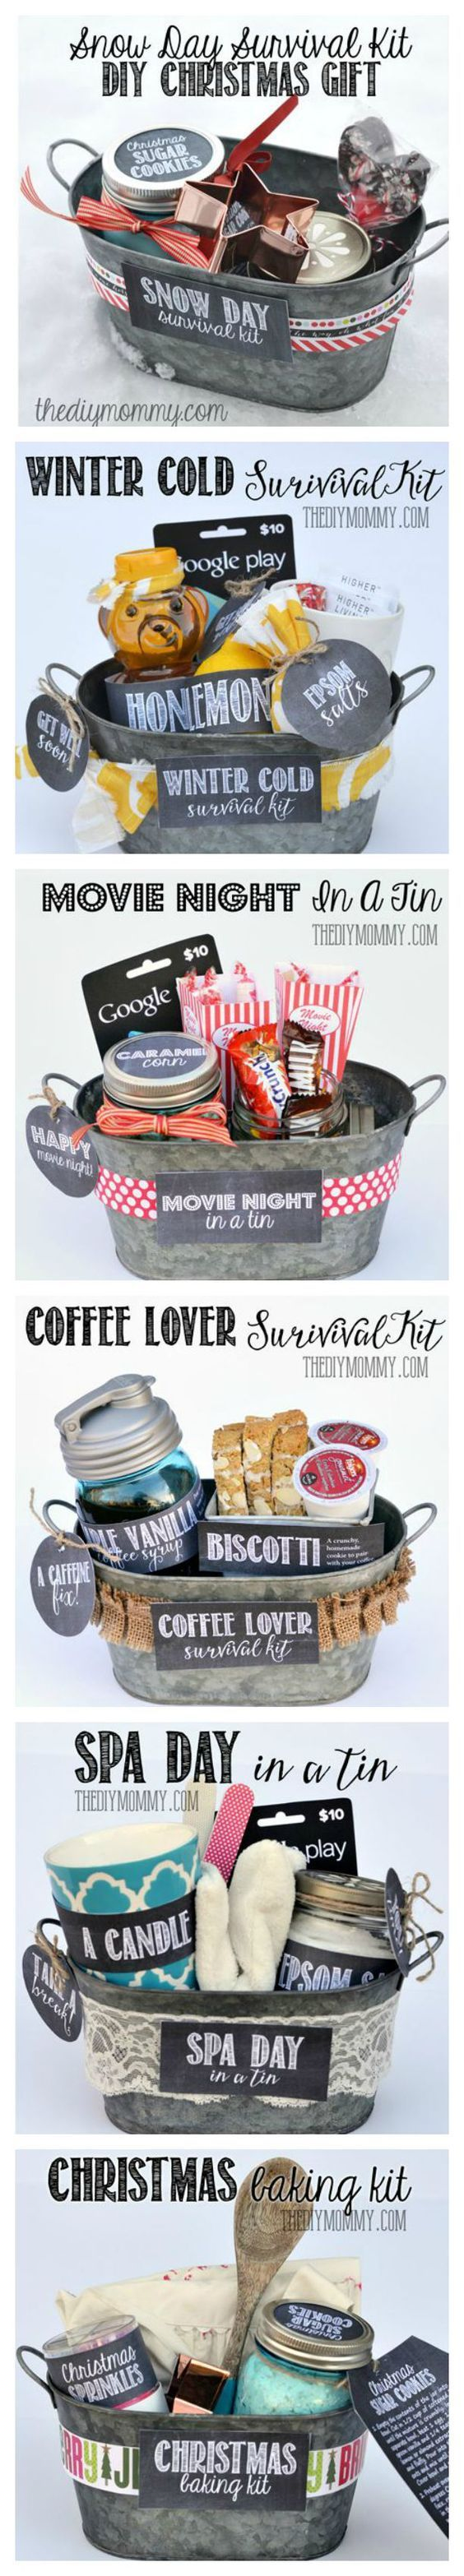 850 best gifts images on pinterest crafts creative ideas and diy 6 diy gifts in a tin ideas via the diy mommy do it yourself gift solutioingenieria Gallery